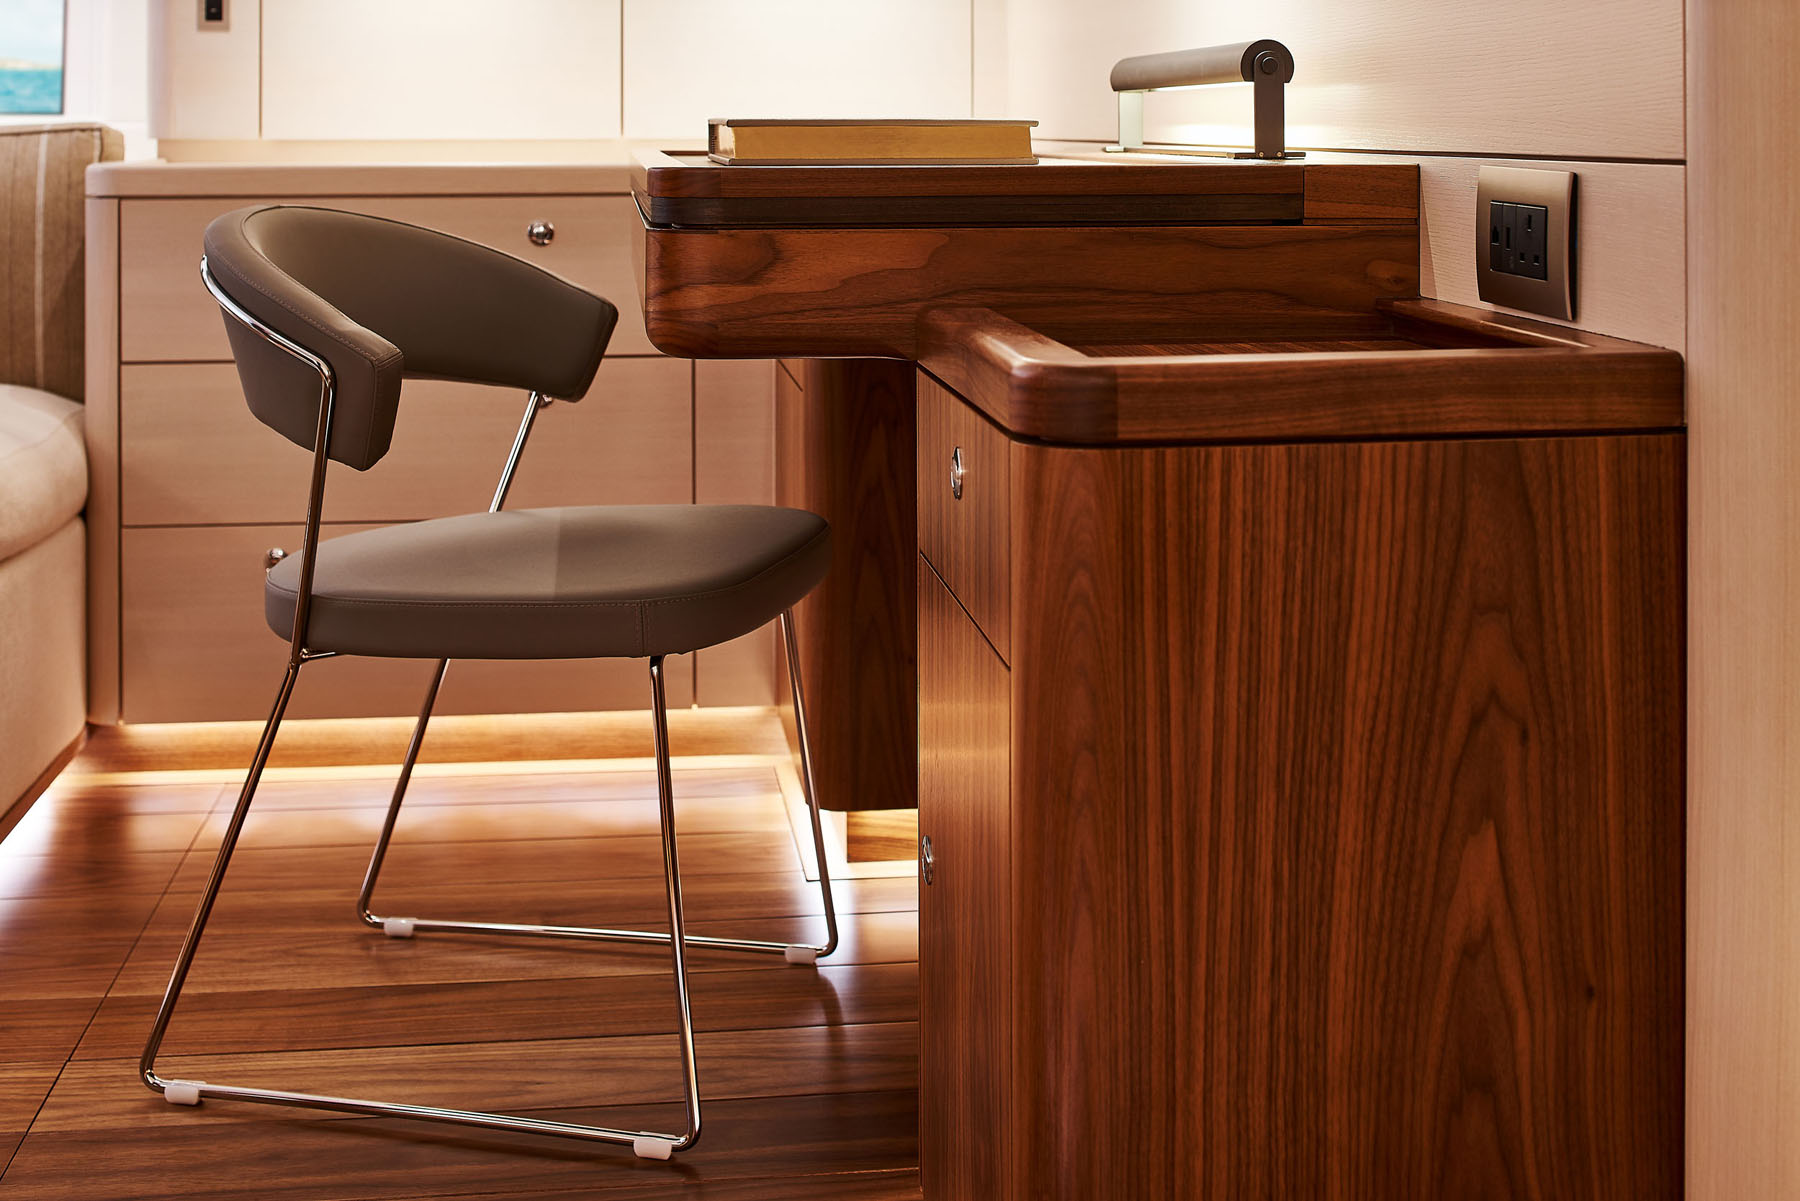 Desk unit in the master bedroom onboard the S/Y Archelon